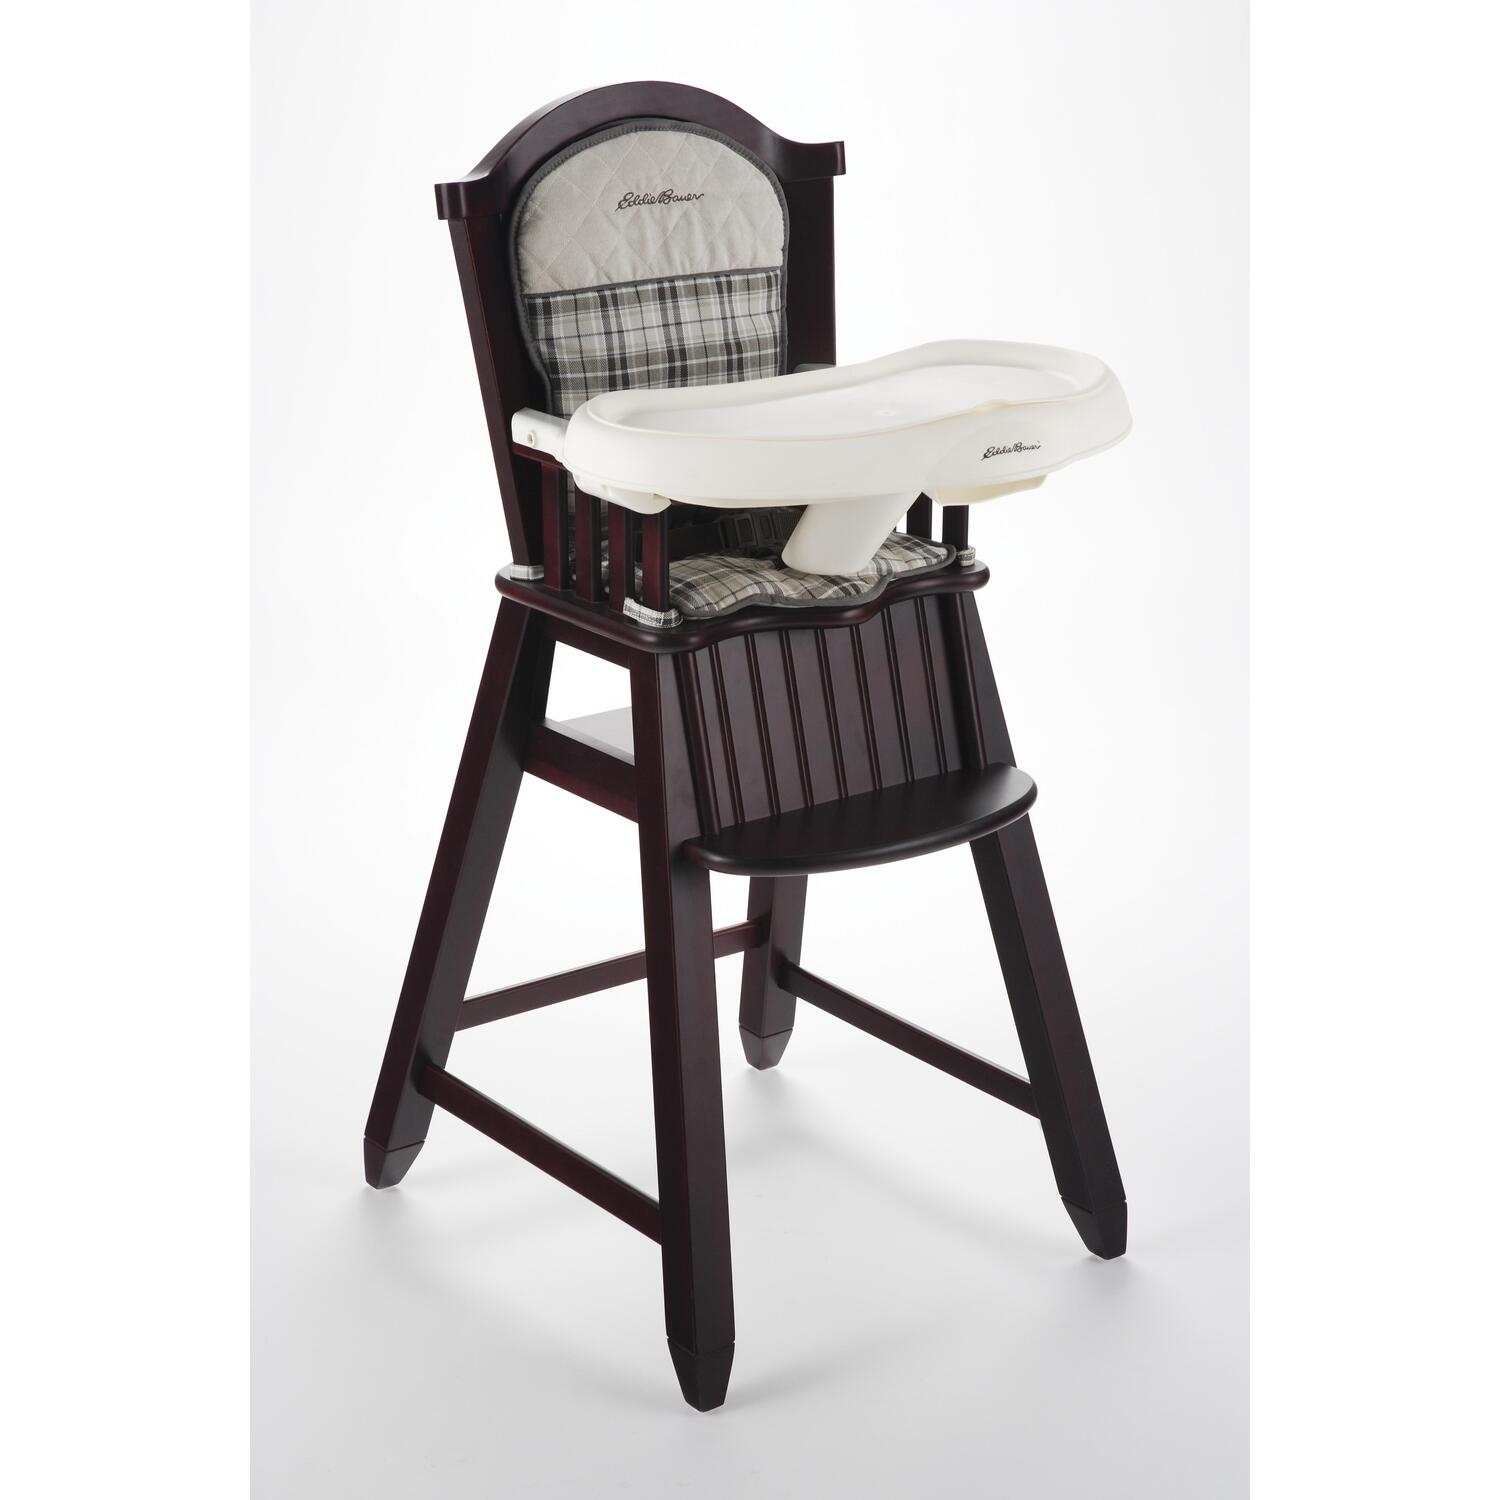 eddie bauer high chairs upholstered club classic chair stonewood by